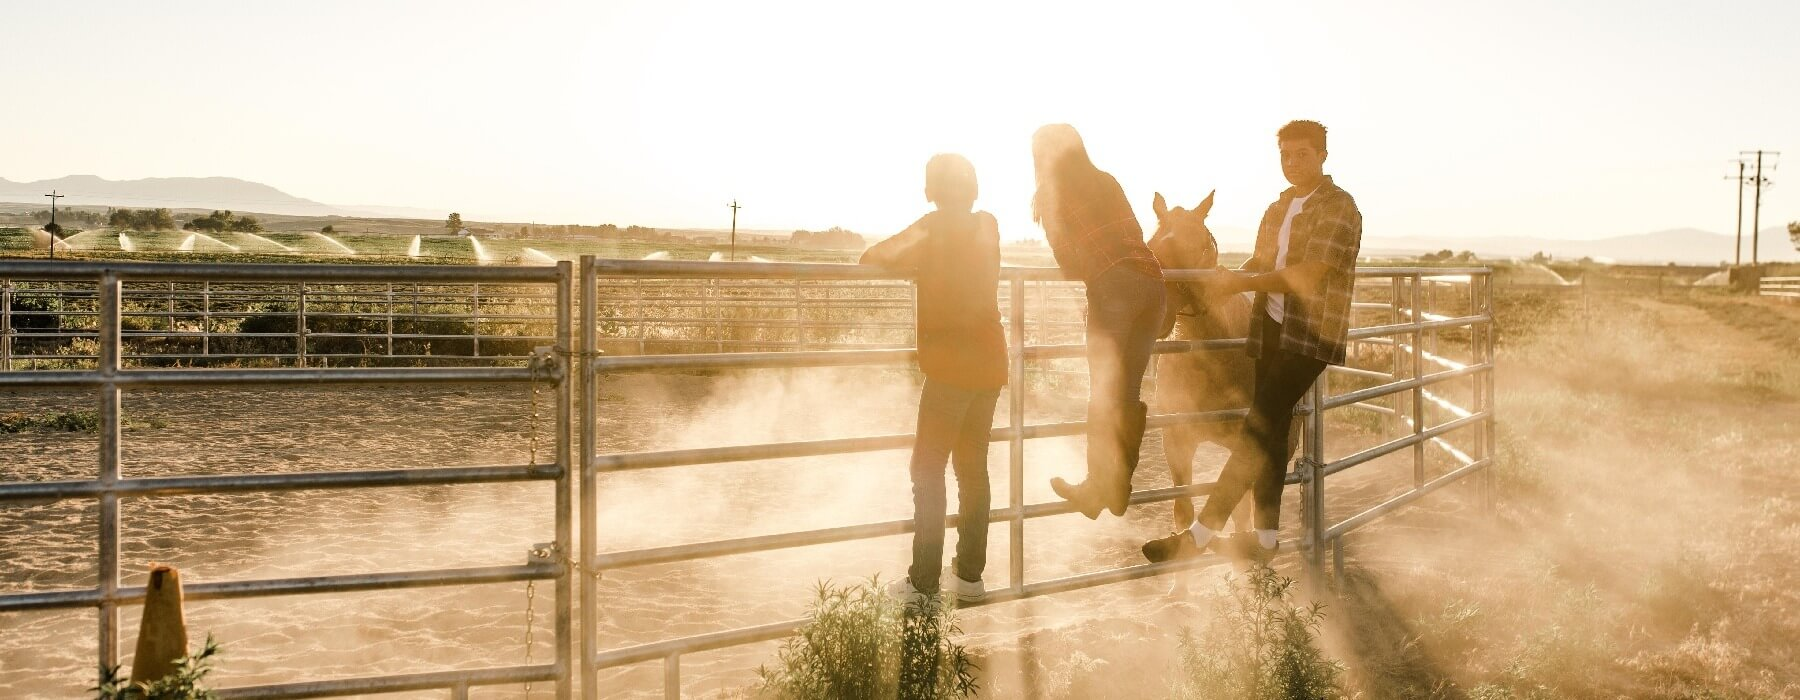 Teens and Horses at Sunrise